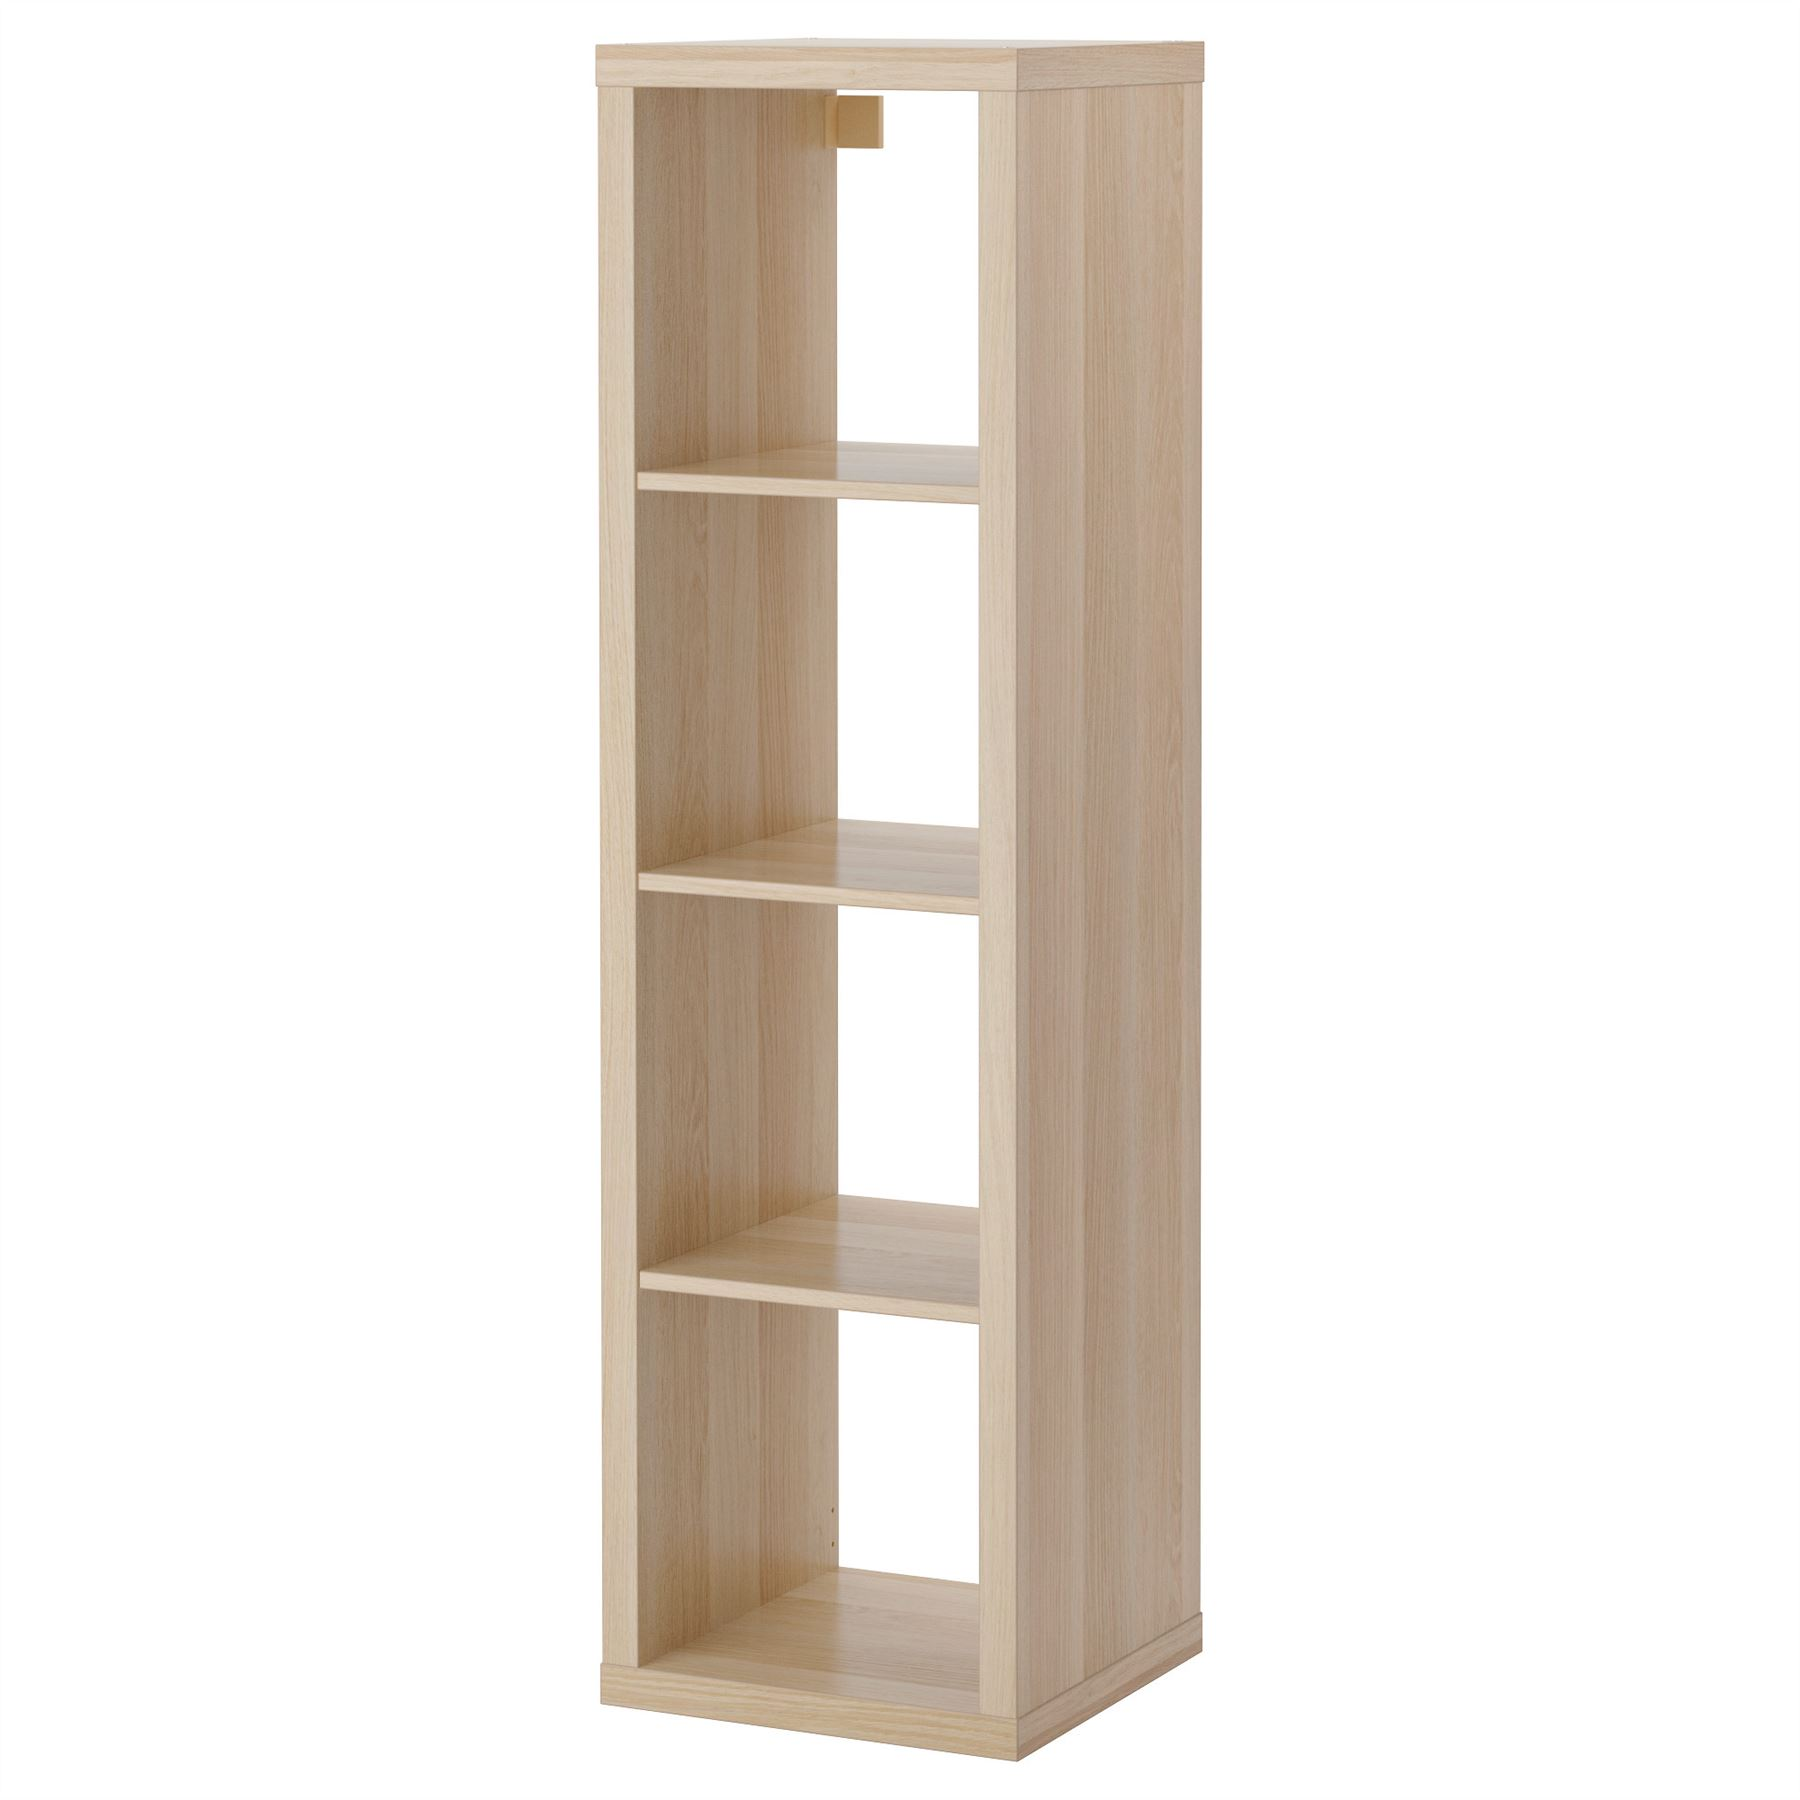 Ikea Kallax 4 Cube Storage Bookcase Rectangle Shelving Unit White ...